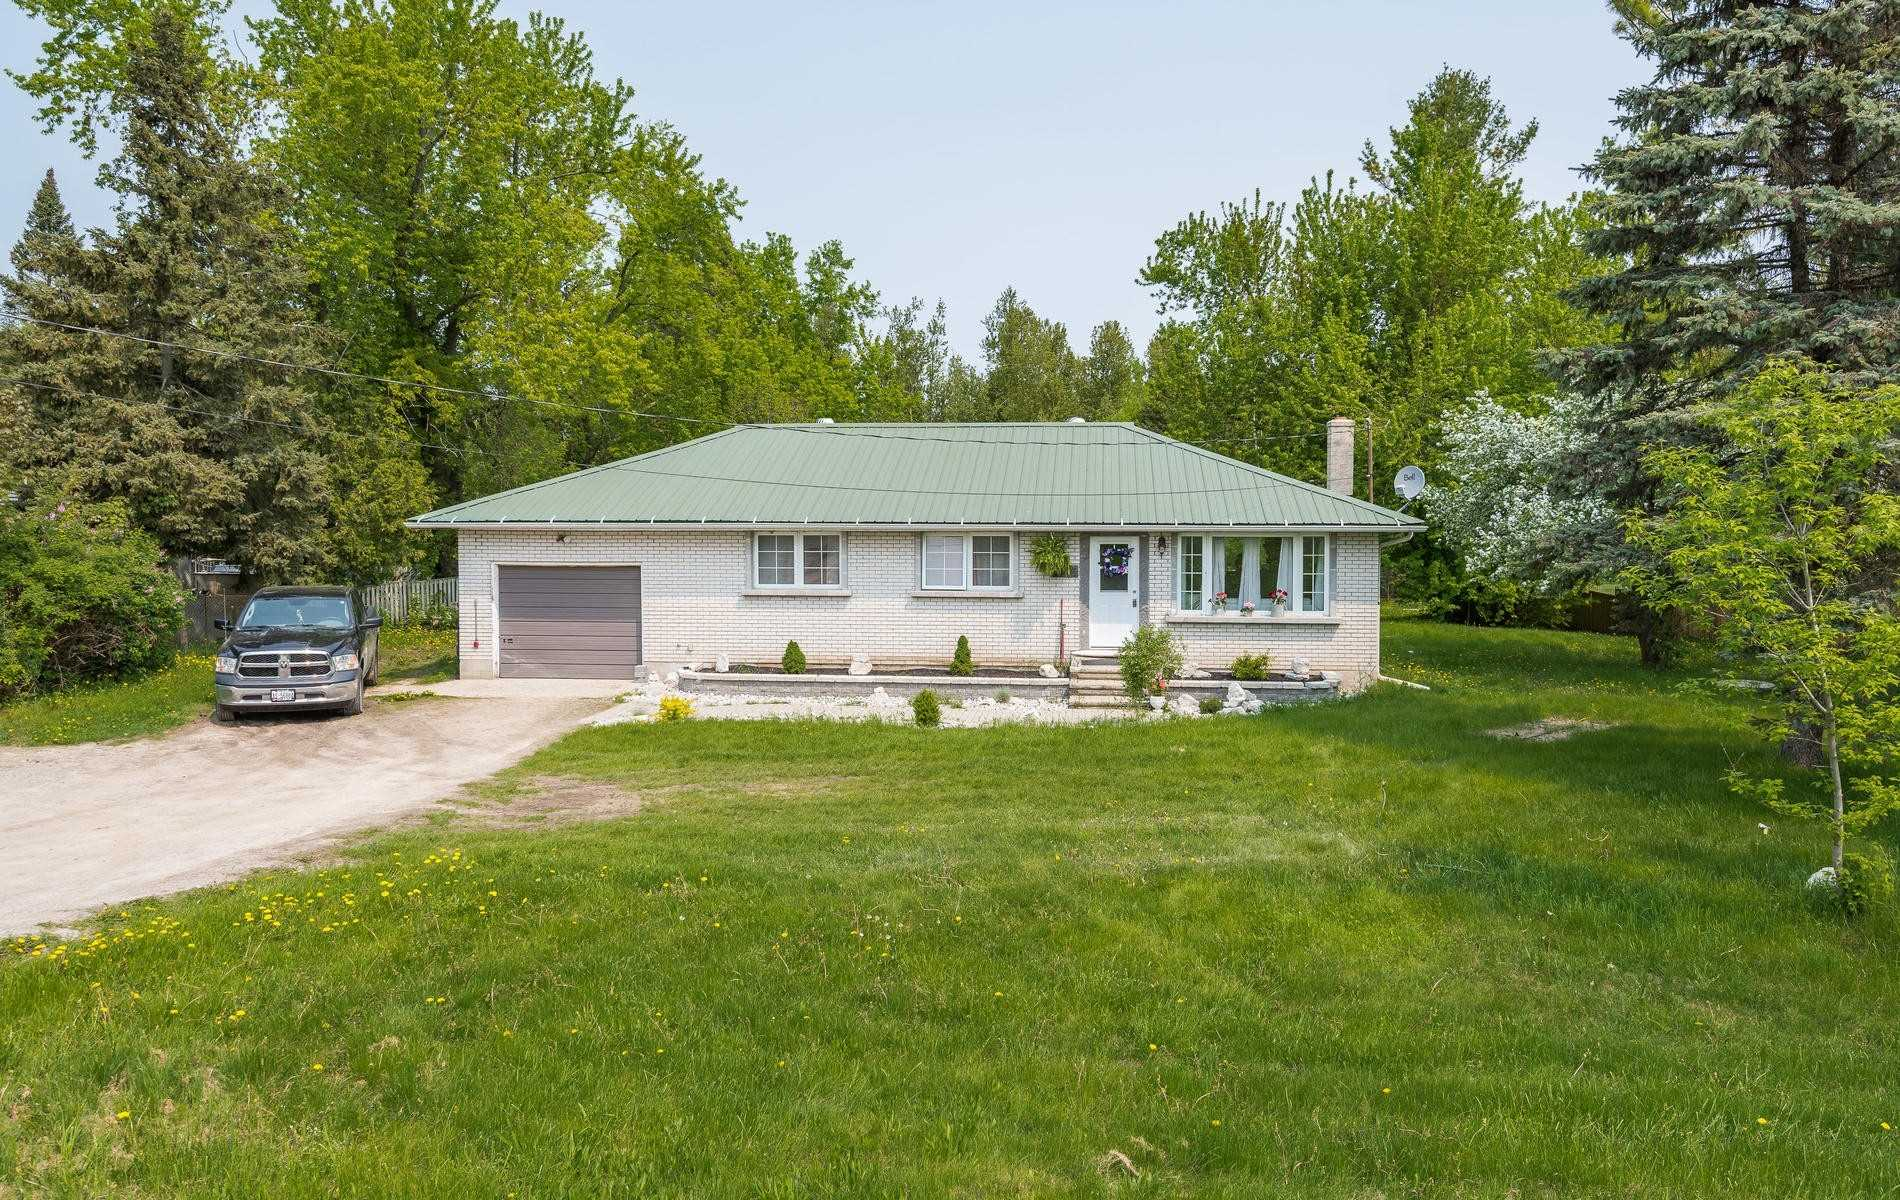 """Country Living At It's Best, Close To Town And Honda Plant, Half Acre Lot With Separate Entrance Apartment.  Unique One Of A Kind Wood Finishes.  Hiking Trails At The Back Of The Property.  Enjoy Your Ski-Doo. 4-Wheeler Out Your Back Door.  Metal Roof And Lots Of Parking.  Fiber-Optic Available To Work From Home. """"Seller Does Not Warrant Retrofit Of House"""""""